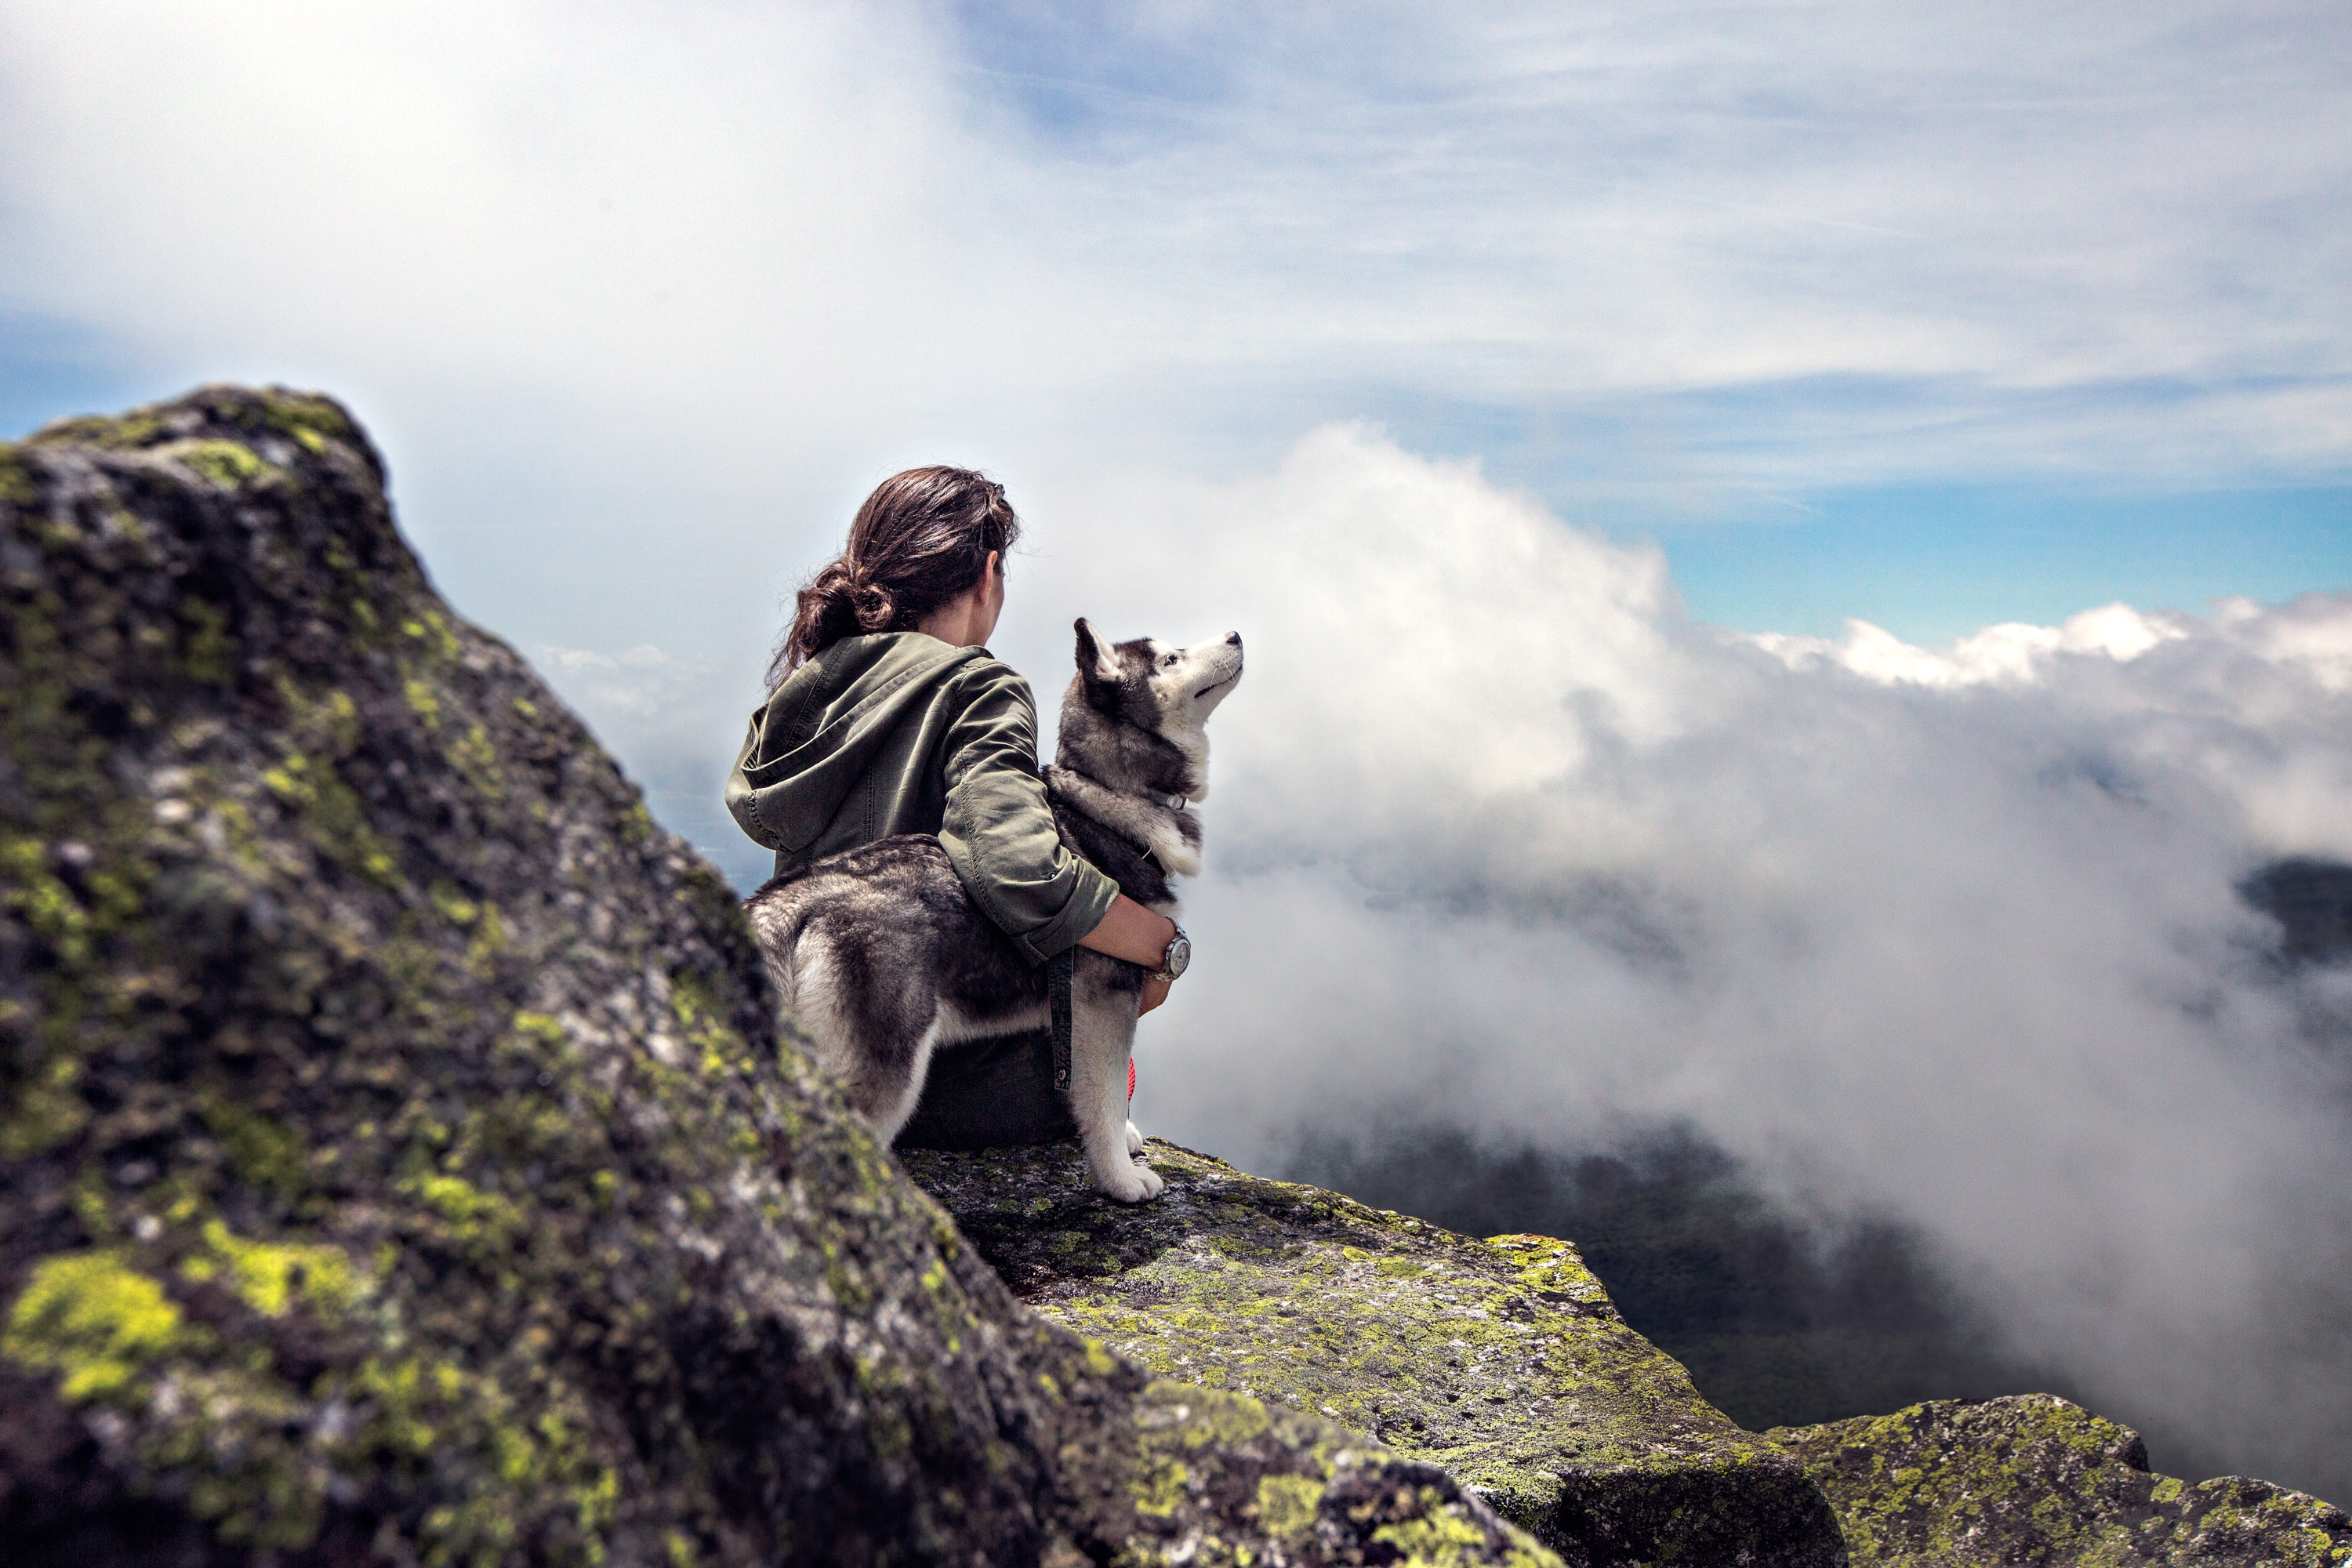 7 Items You Should Always Pack When Hiking With Your Dog